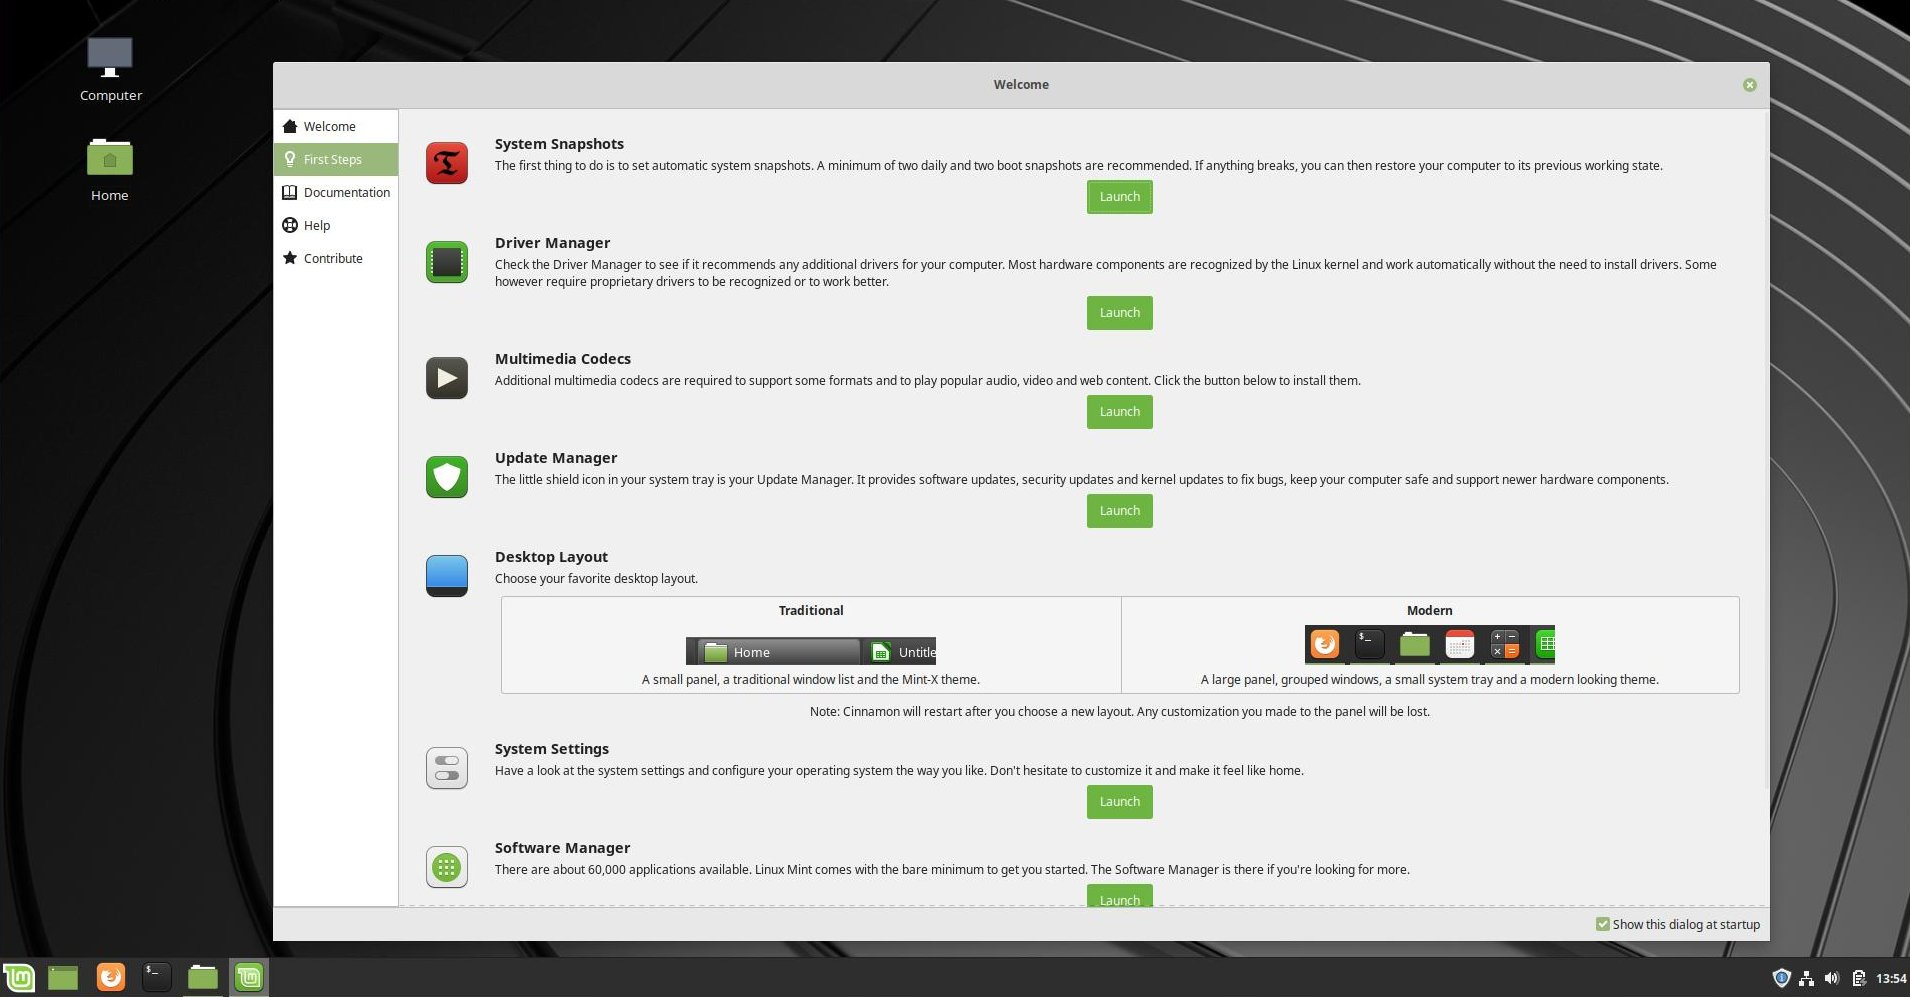 Linux Mint's very nice Welcome app walks you through setting up your machine.